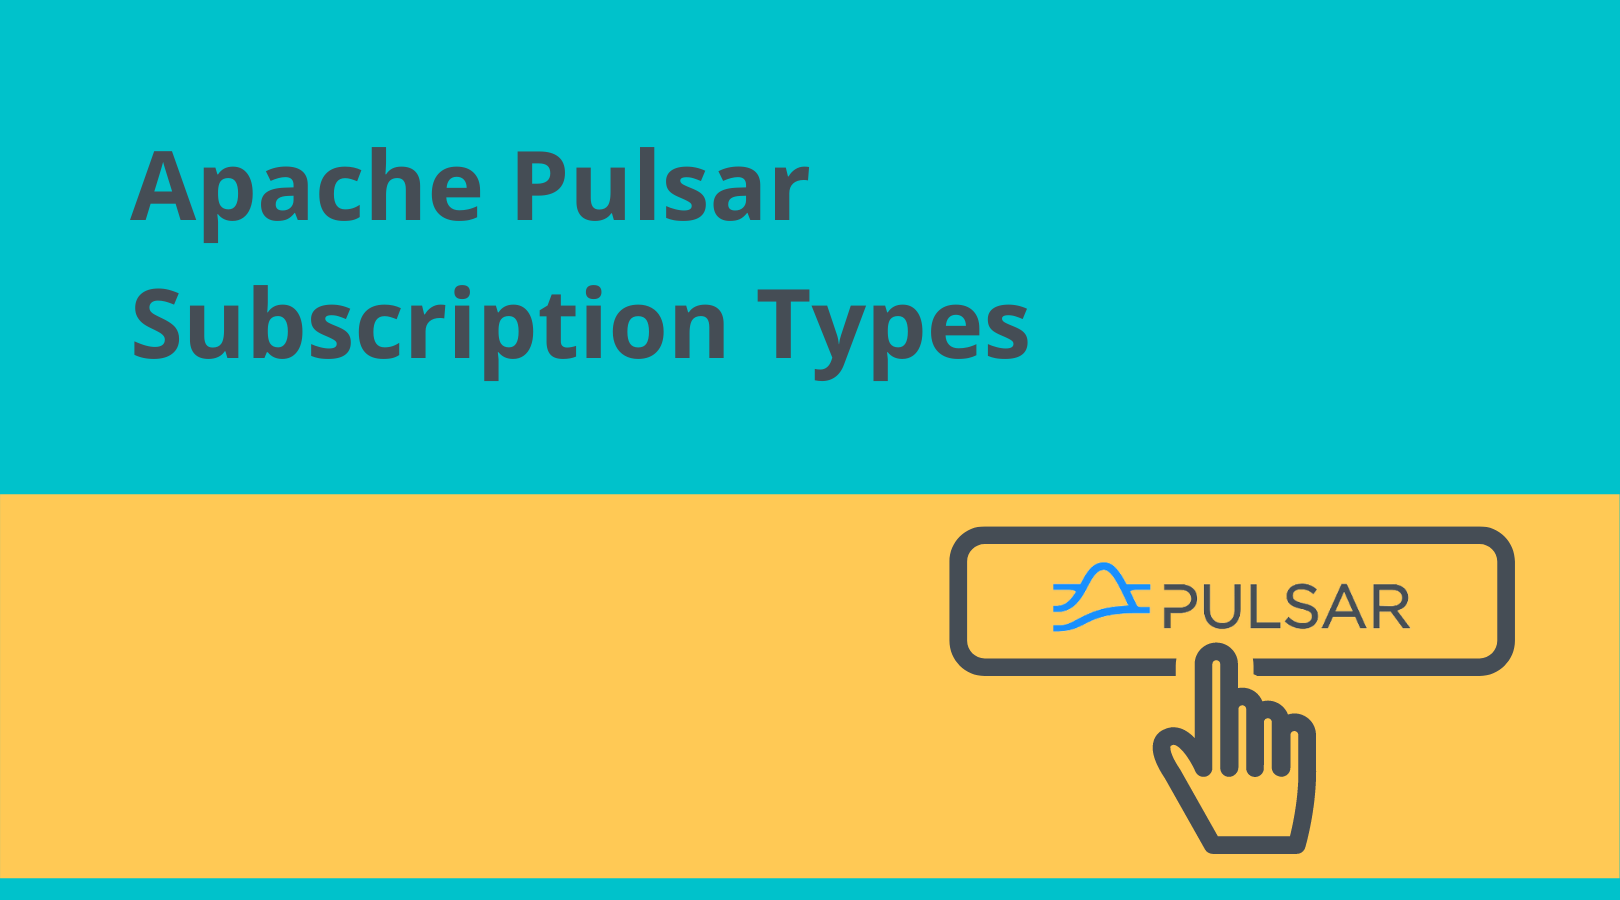 Subscription Types in Apache Pulsar